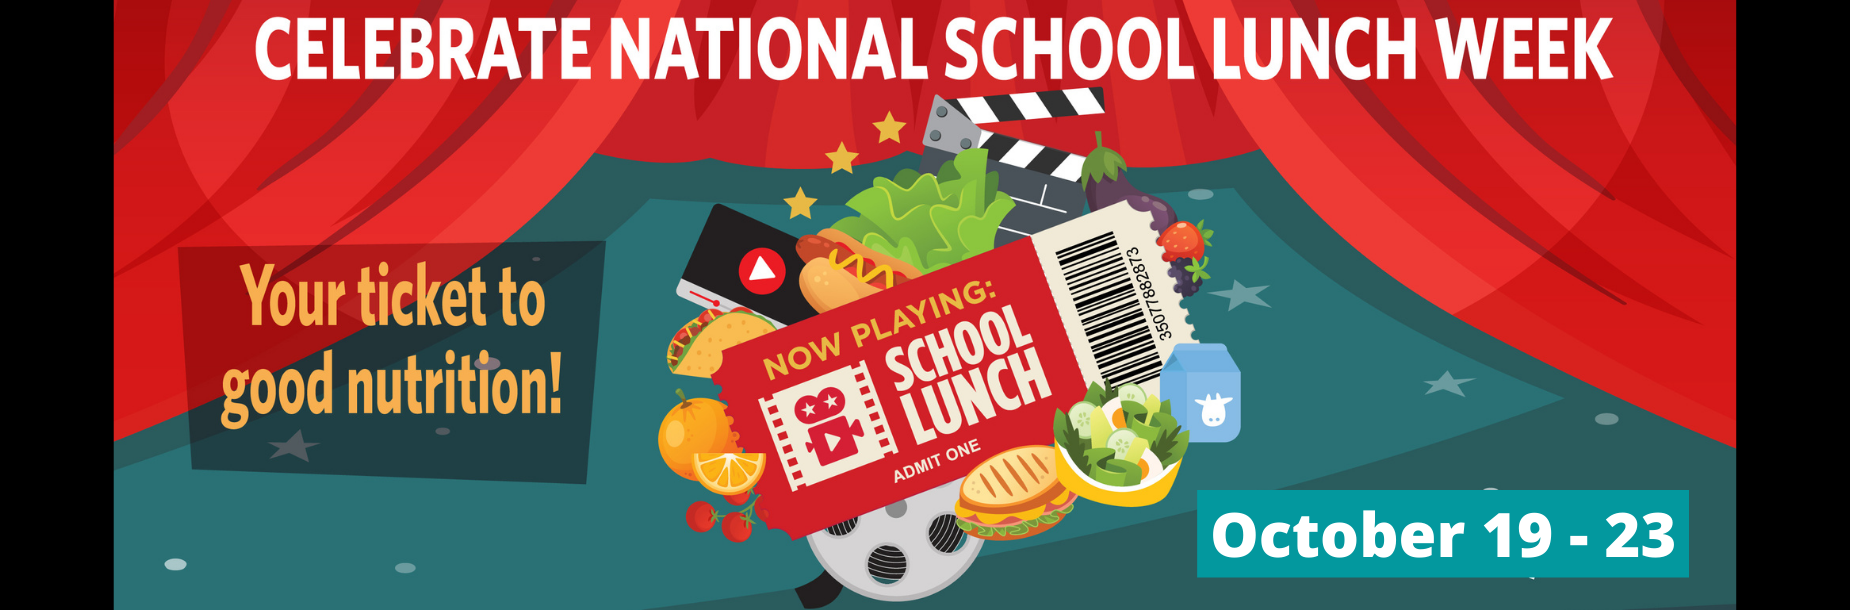 national school lunch week infographic